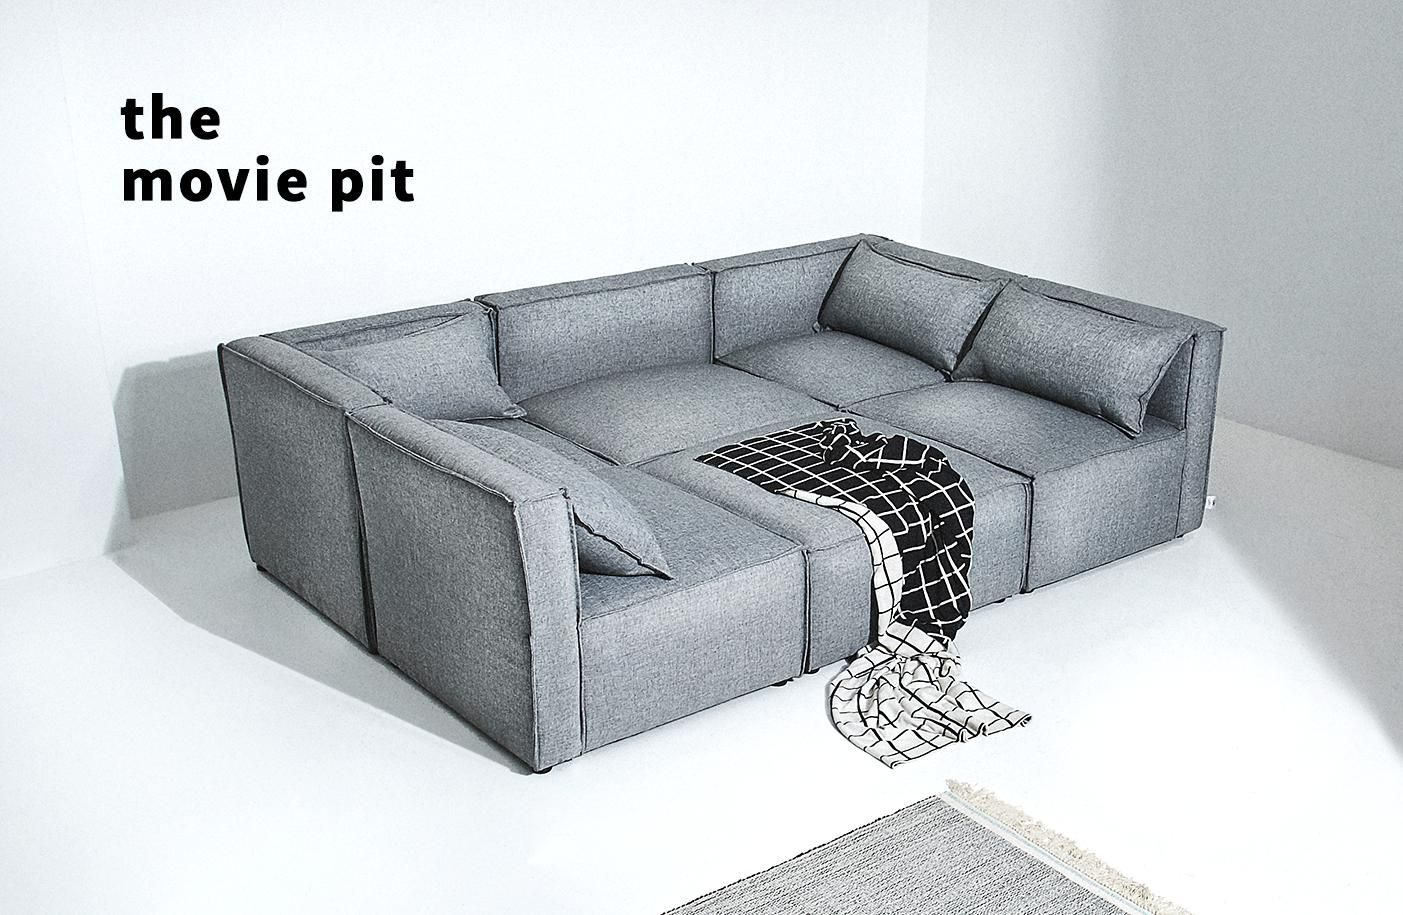 Best Modular Sofa Small Space Solves Decor Blog The Way Of Us Superbalist Sofas For Small Spaces Modular Sofa Small Spaces